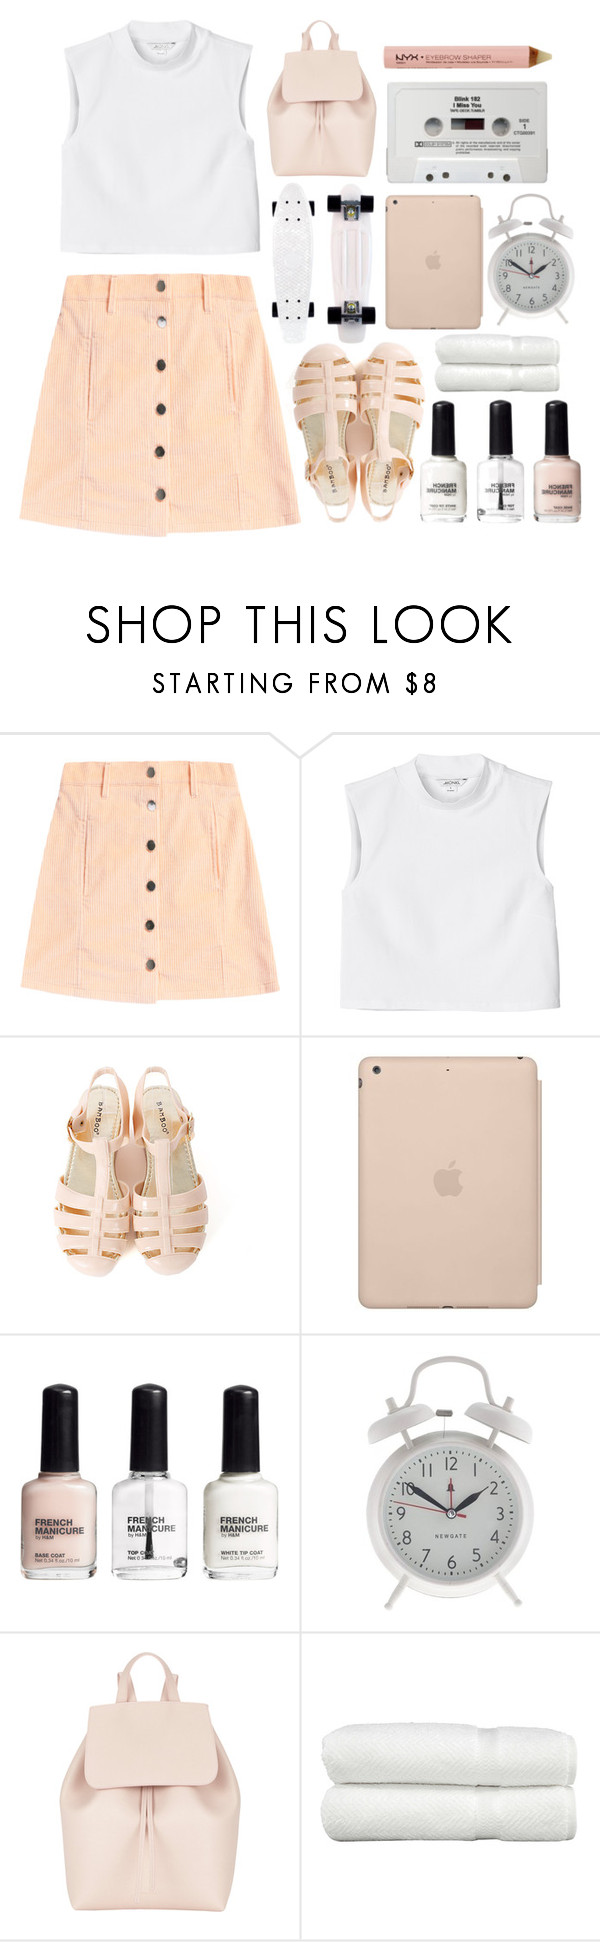 """""""//I'll come running to you//"""" by little-miss-marie ❤ liked on Polyvore featuring Monki, Black Apple, H&M, J.Crew, Mansur Gavriel, Linum Home Textiles and NYX"""